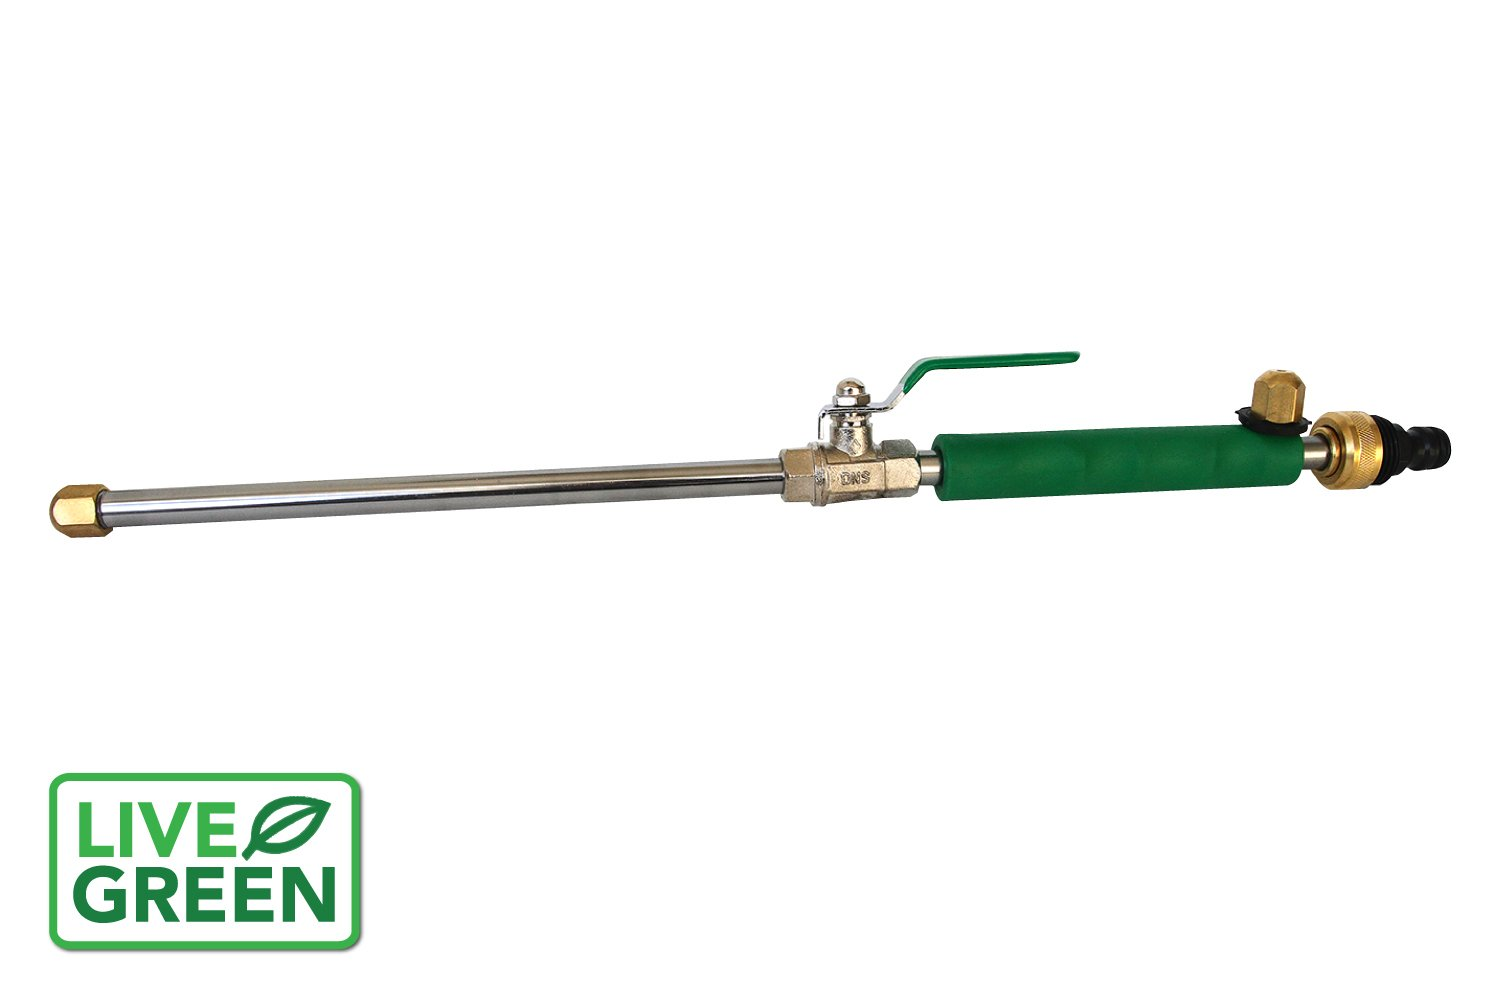 Live Green ALL NEW High Pressure Power Nozzle by Perfect for Washing Cars, Patio's, Sidewalks, Siding and Garage   Pressure Spray Nozzle   Turbo Jet Spray   Full Customer Warranty